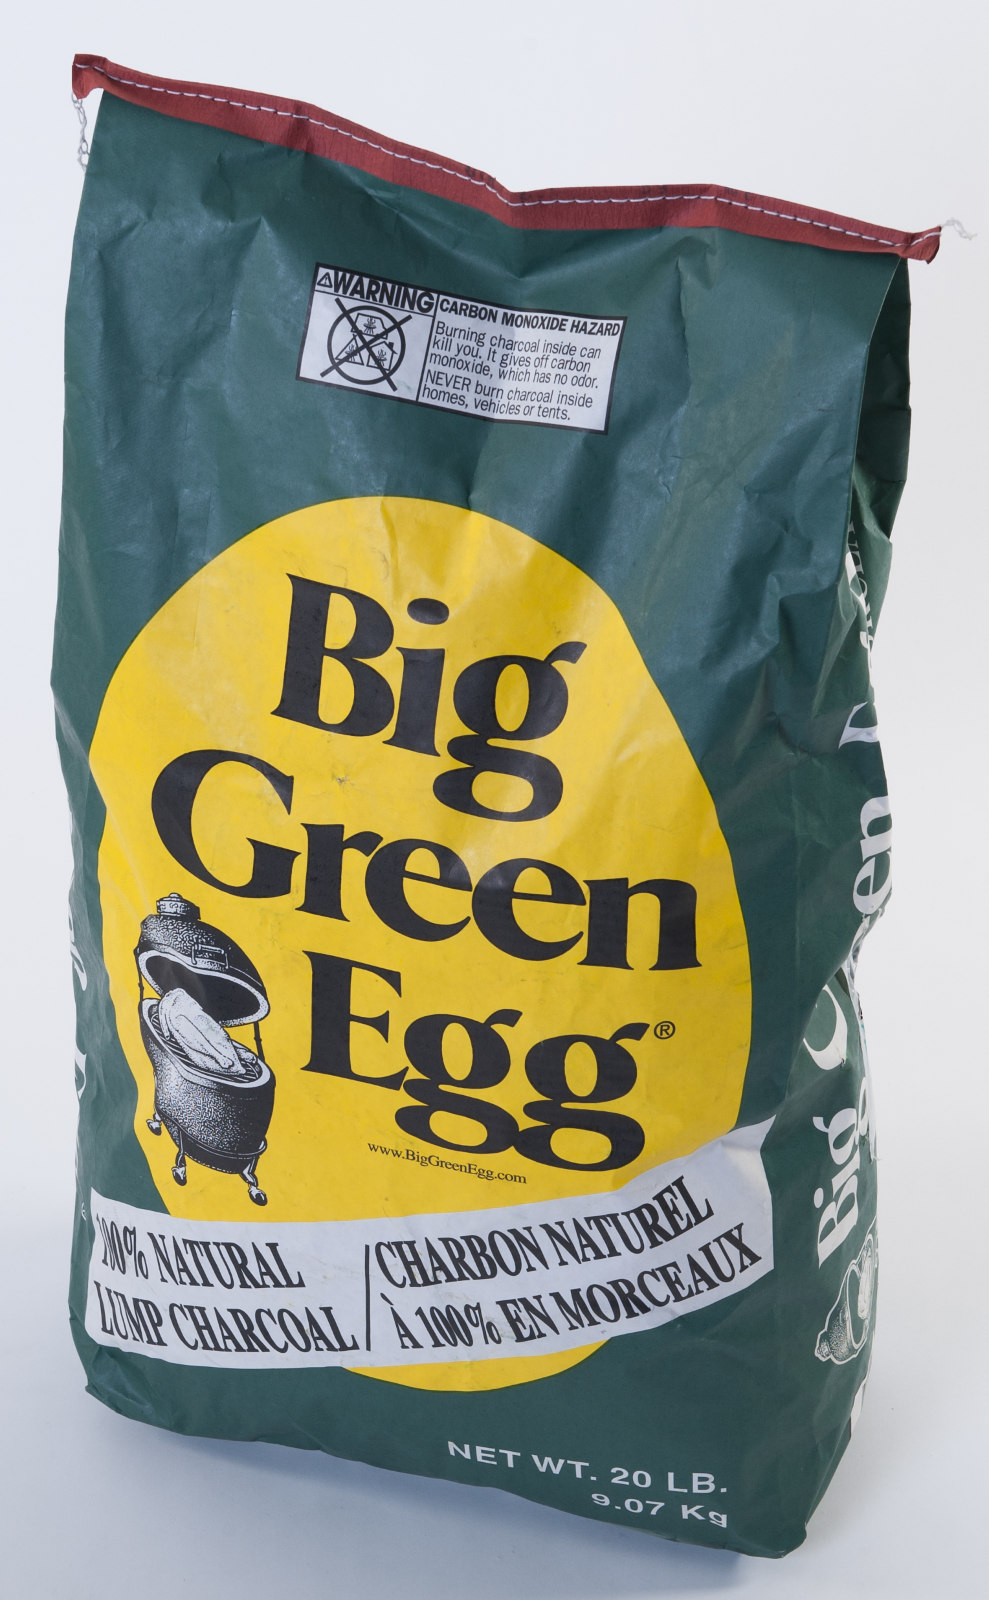 Grillihiilet Big Green Egg 9 kg säkki